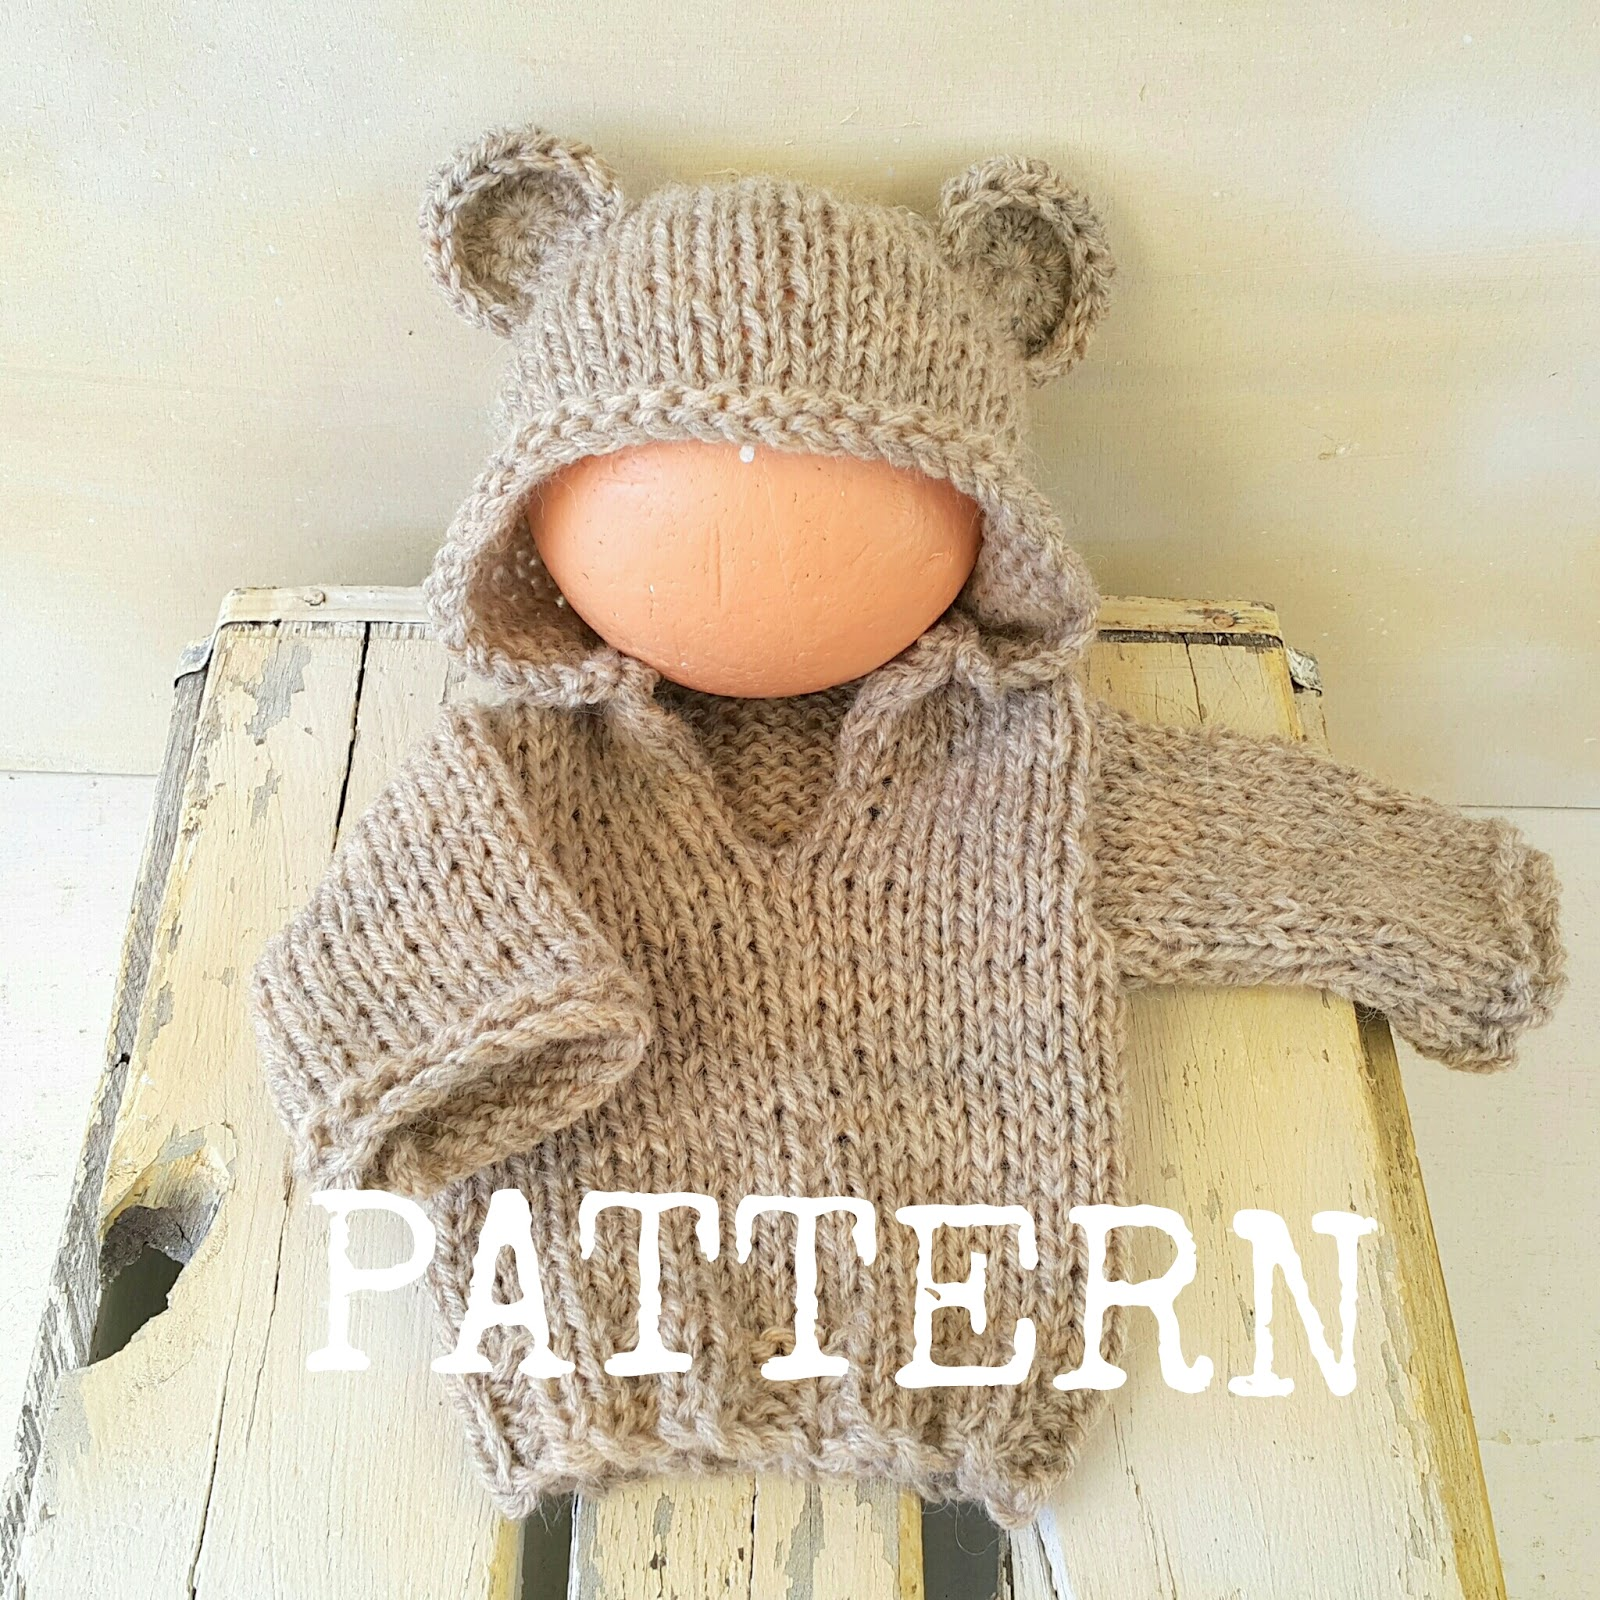 Knitting Patterns For New Baby : Crafty Stuff Baby Knits and Photo Props: Baby Bear Hoodie ...